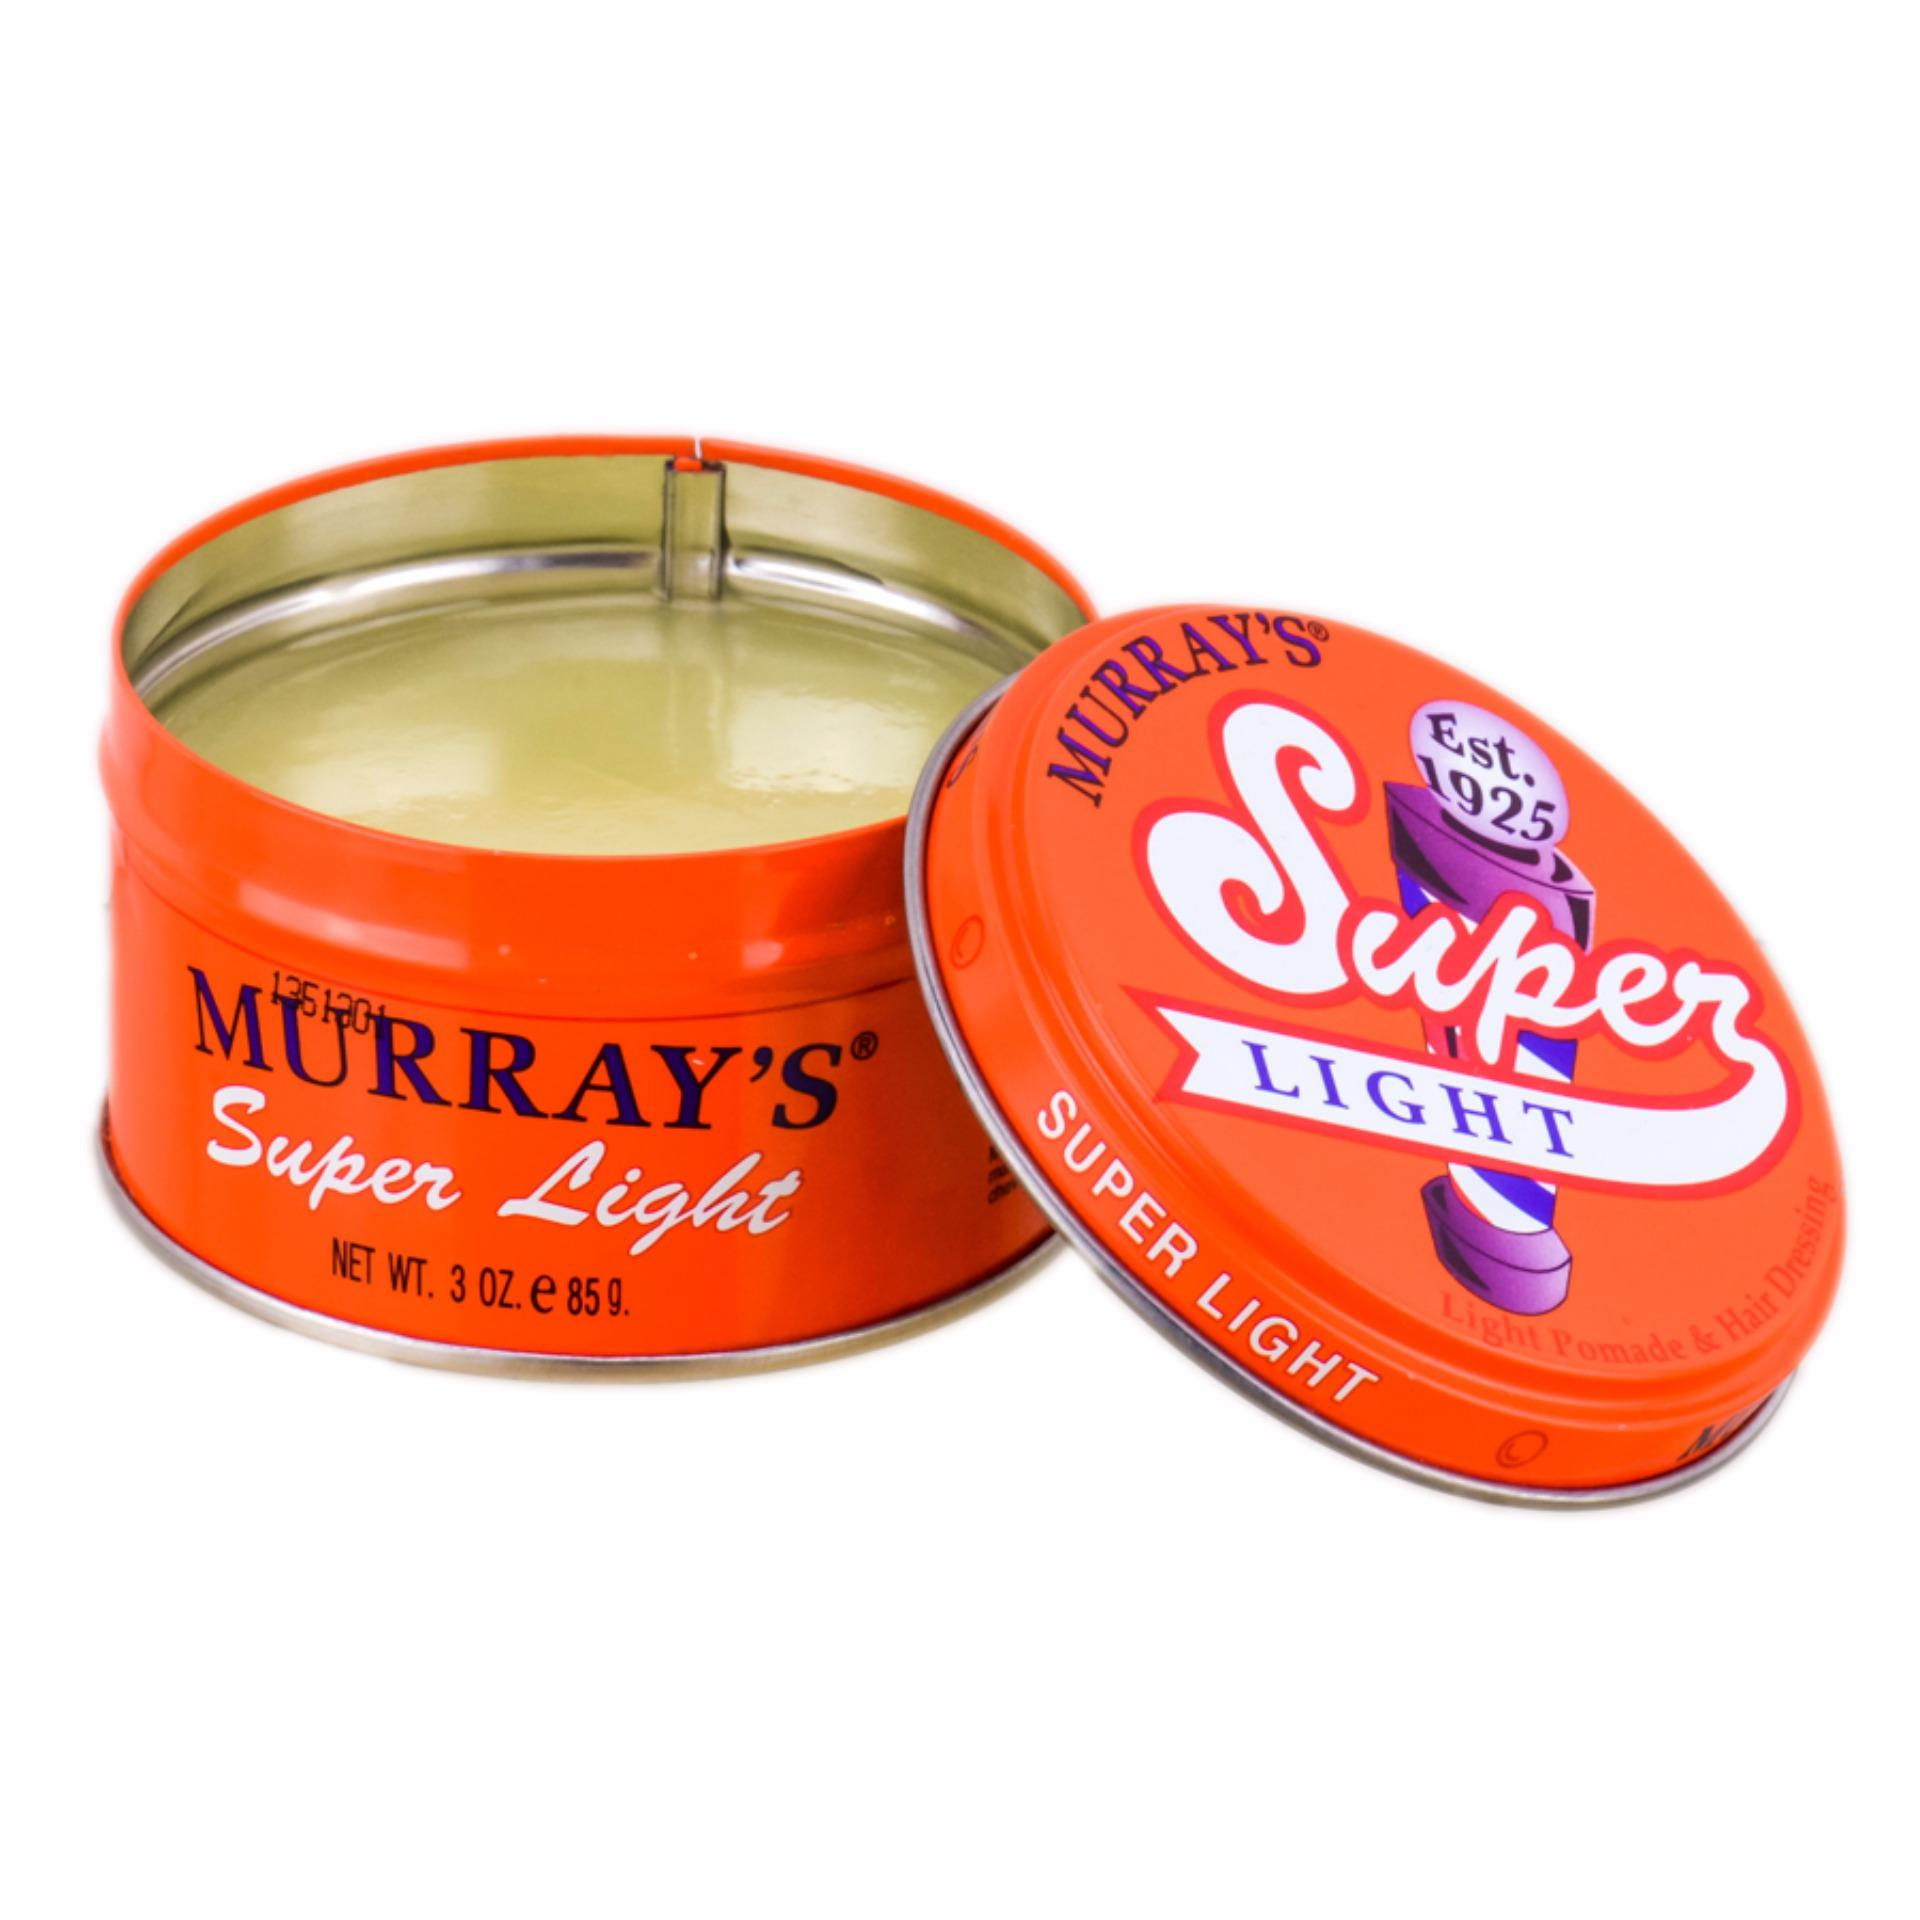 DISKON..! Pomade Murray Murrays Superlight Oilbased Terpopuler